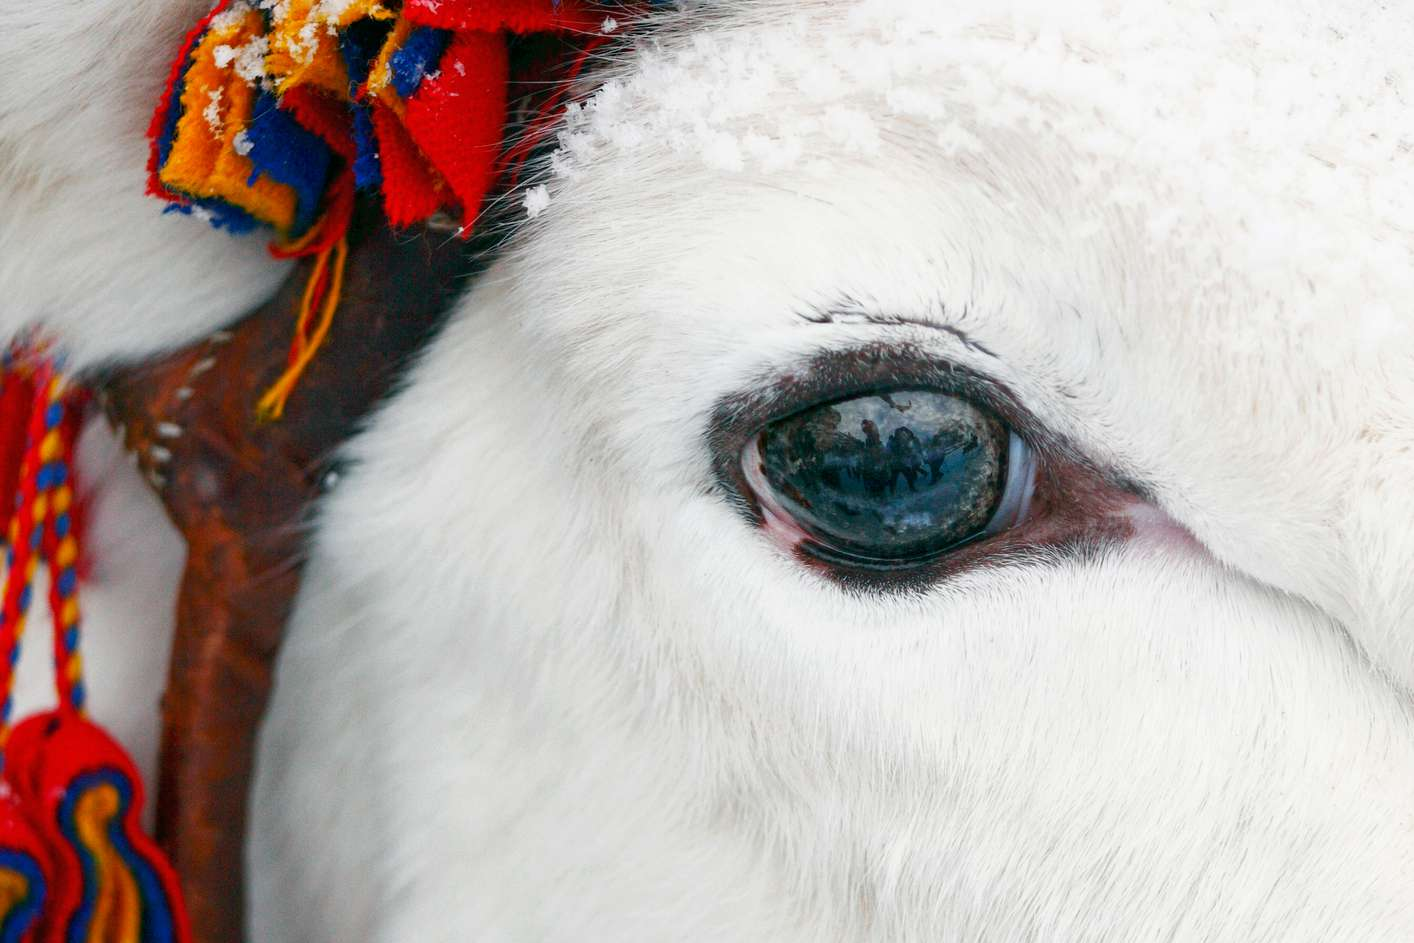 A close-up shot of a white reindeer with a blue-brown eye